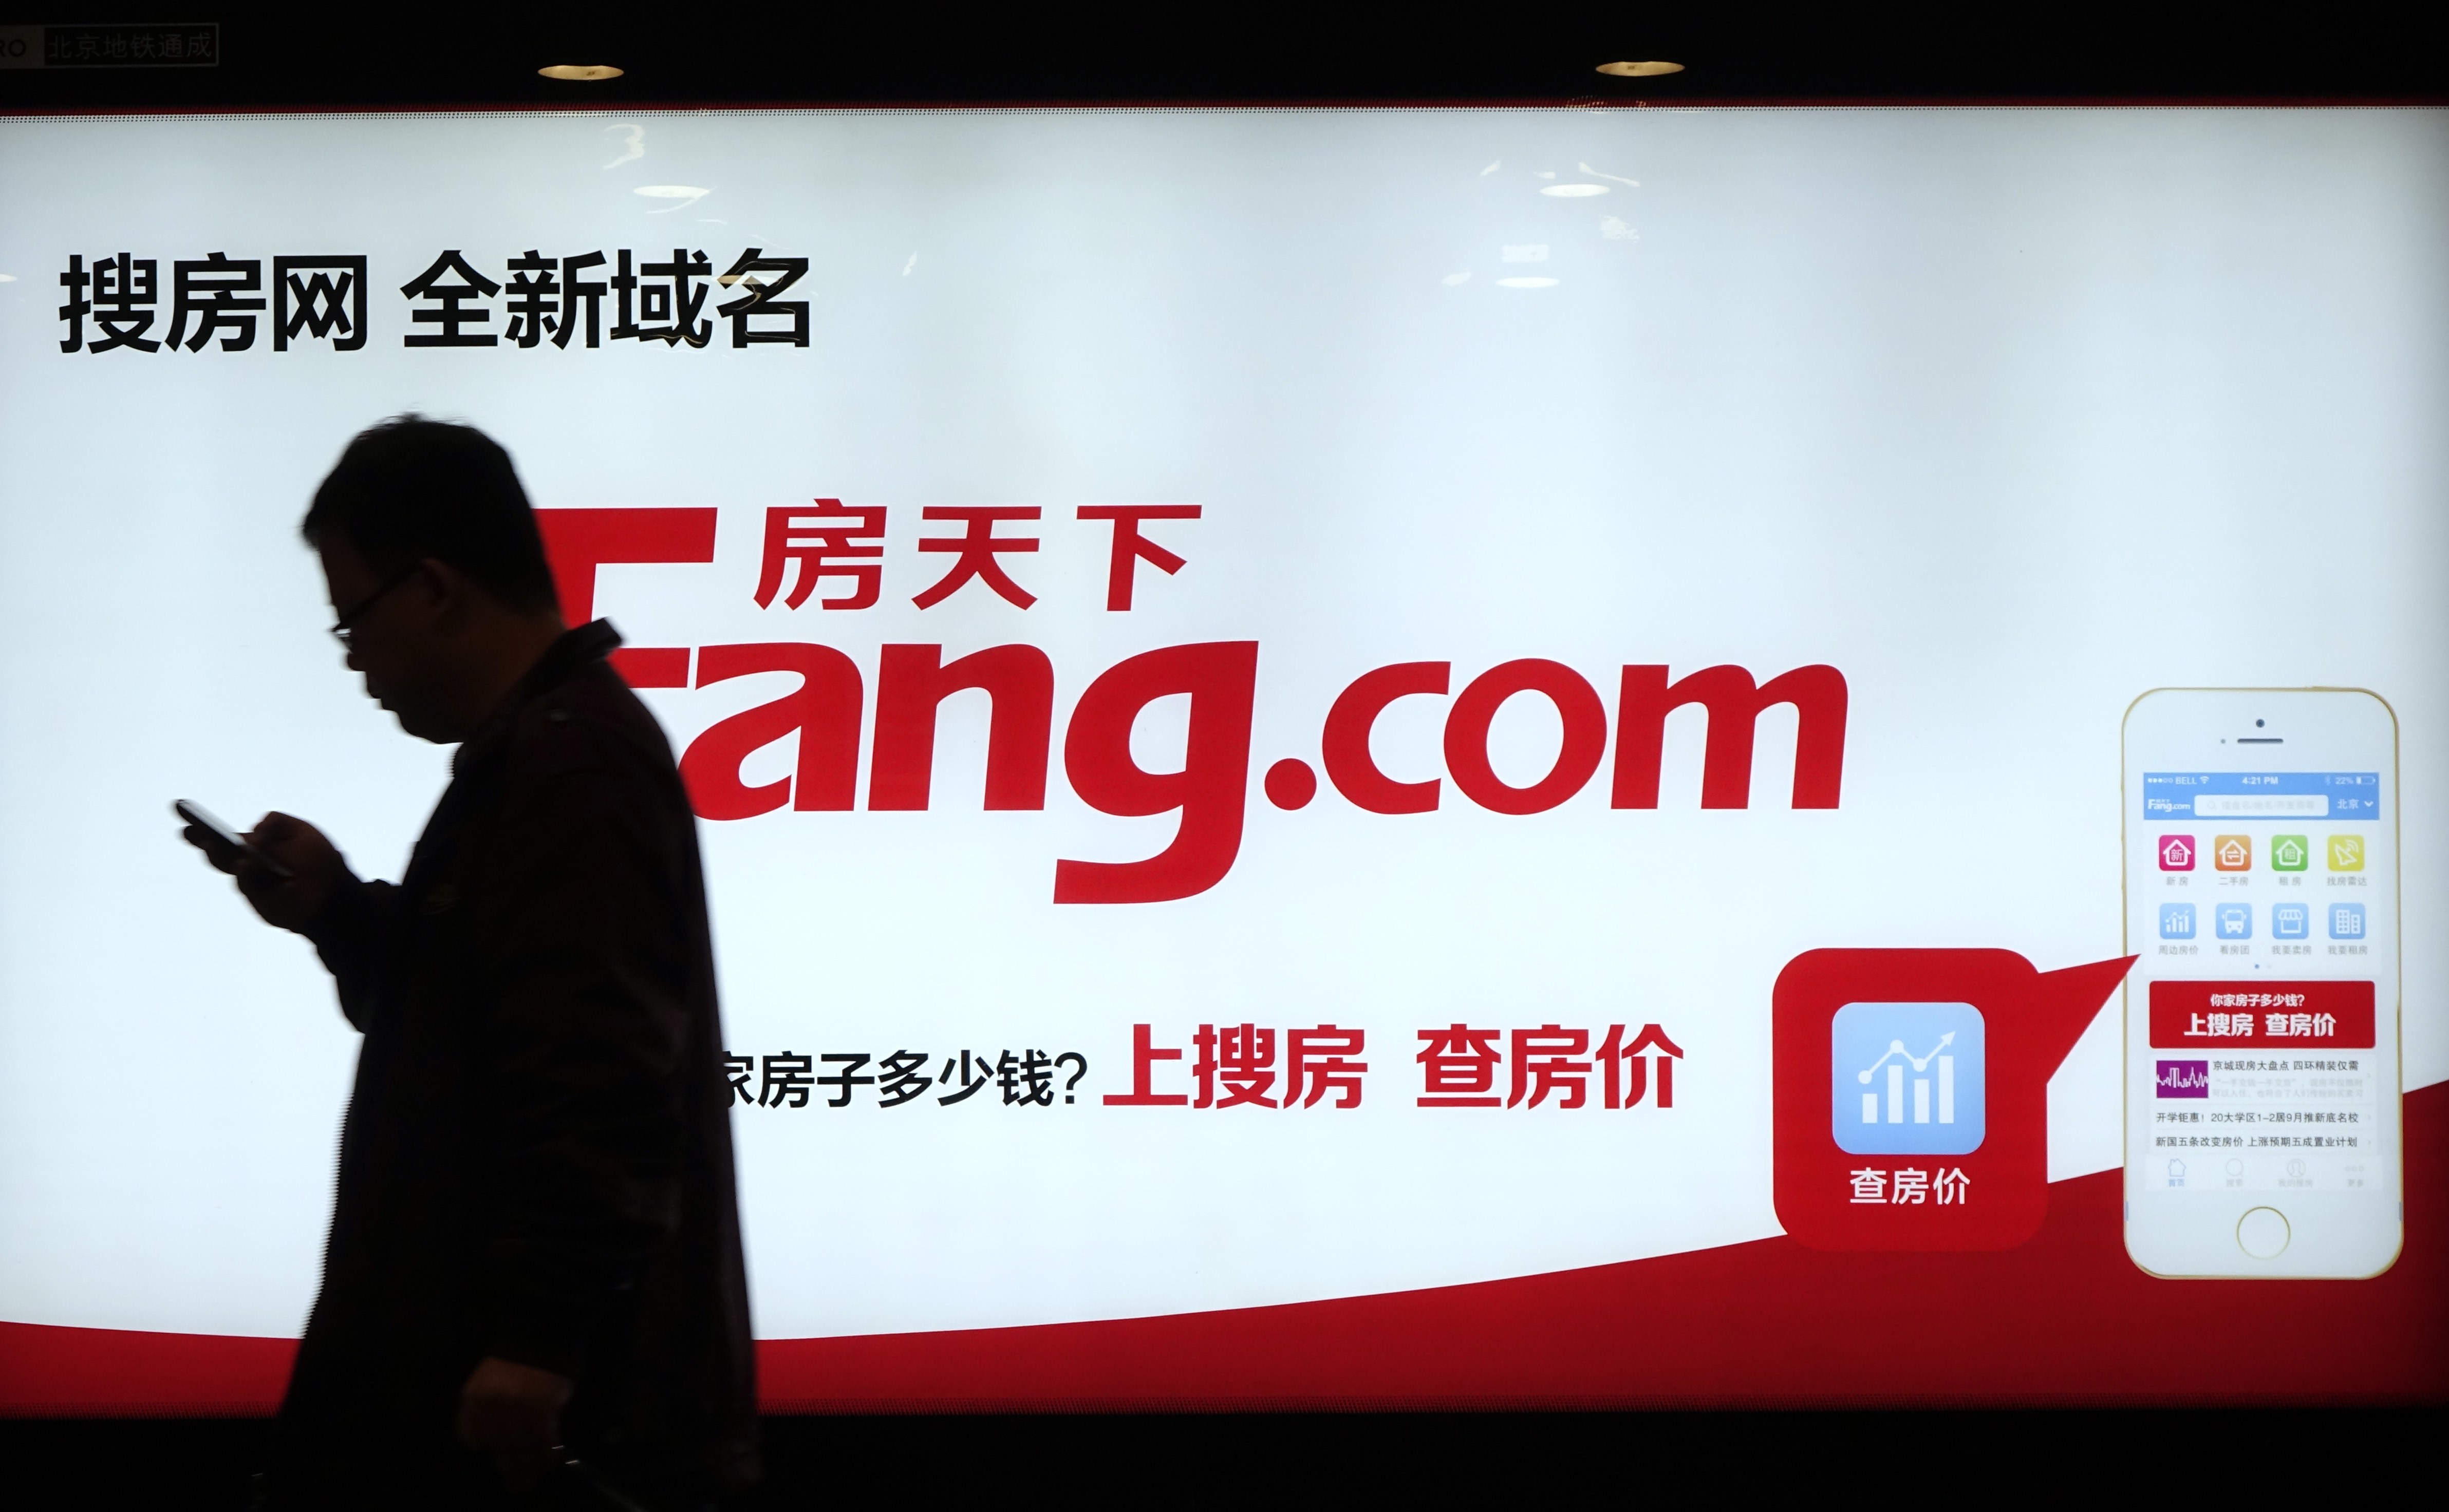 Fang Reports a Slow Year for China's Real Estate; Stock Tumbles 5%